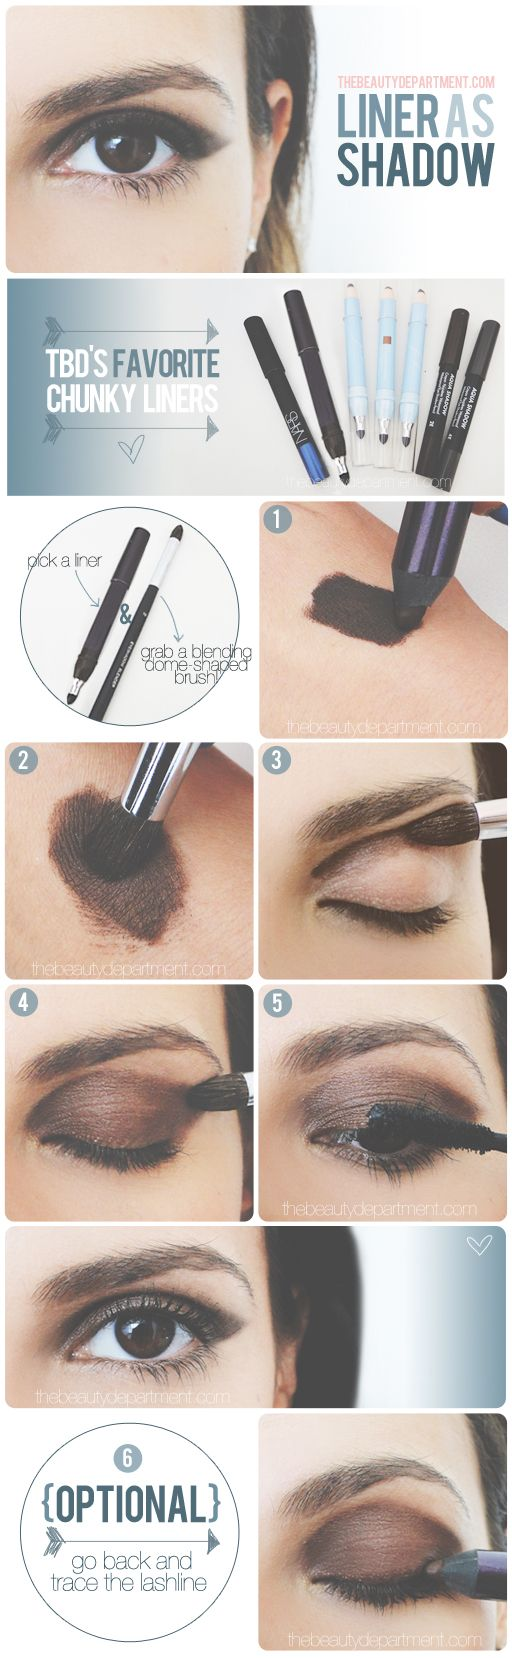 Create a smoky eye using only liner - love this